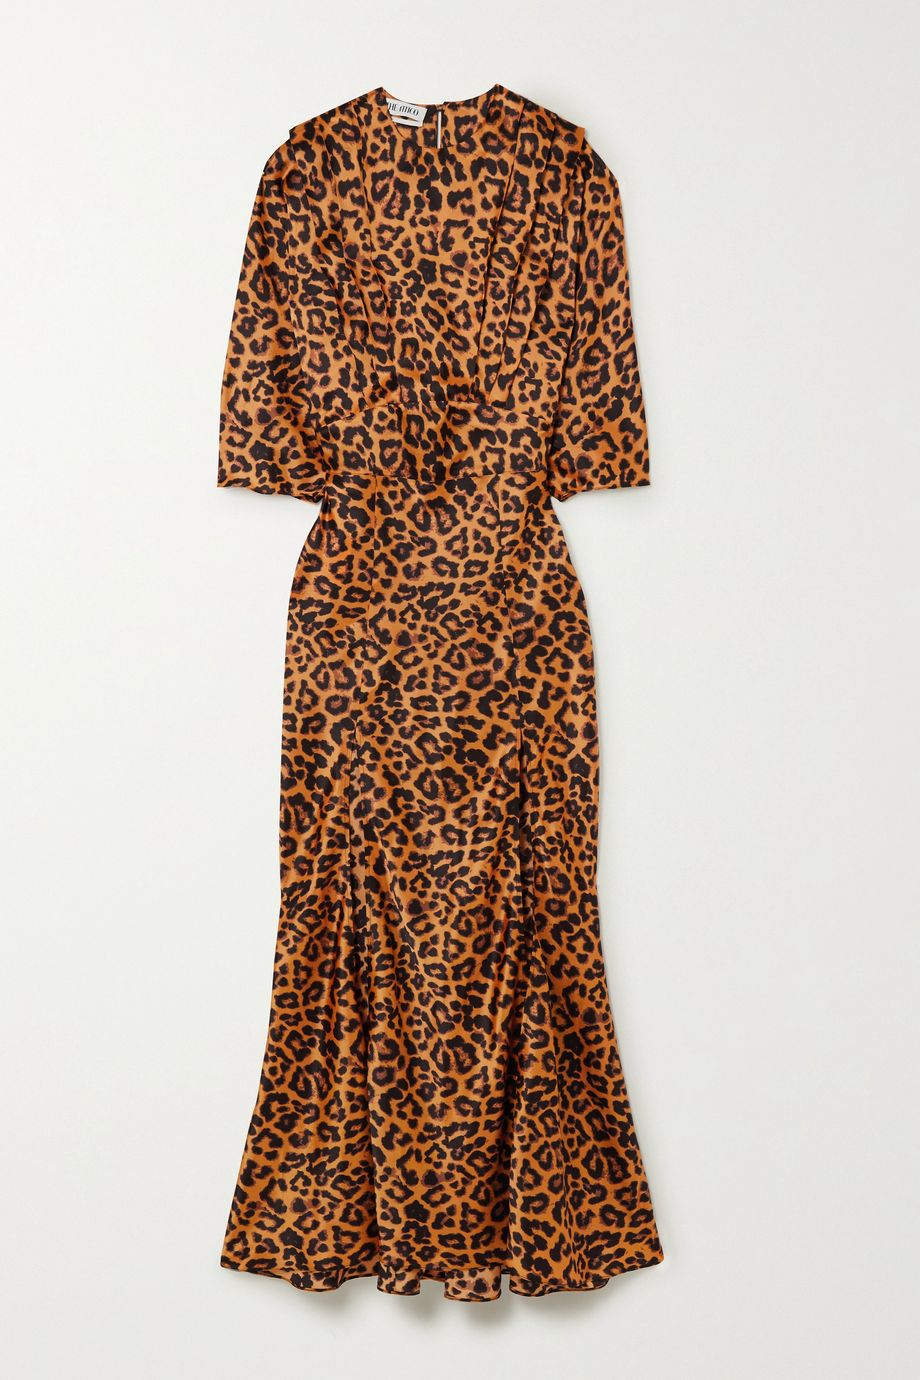 The Attico Leopard-print satin midi dress